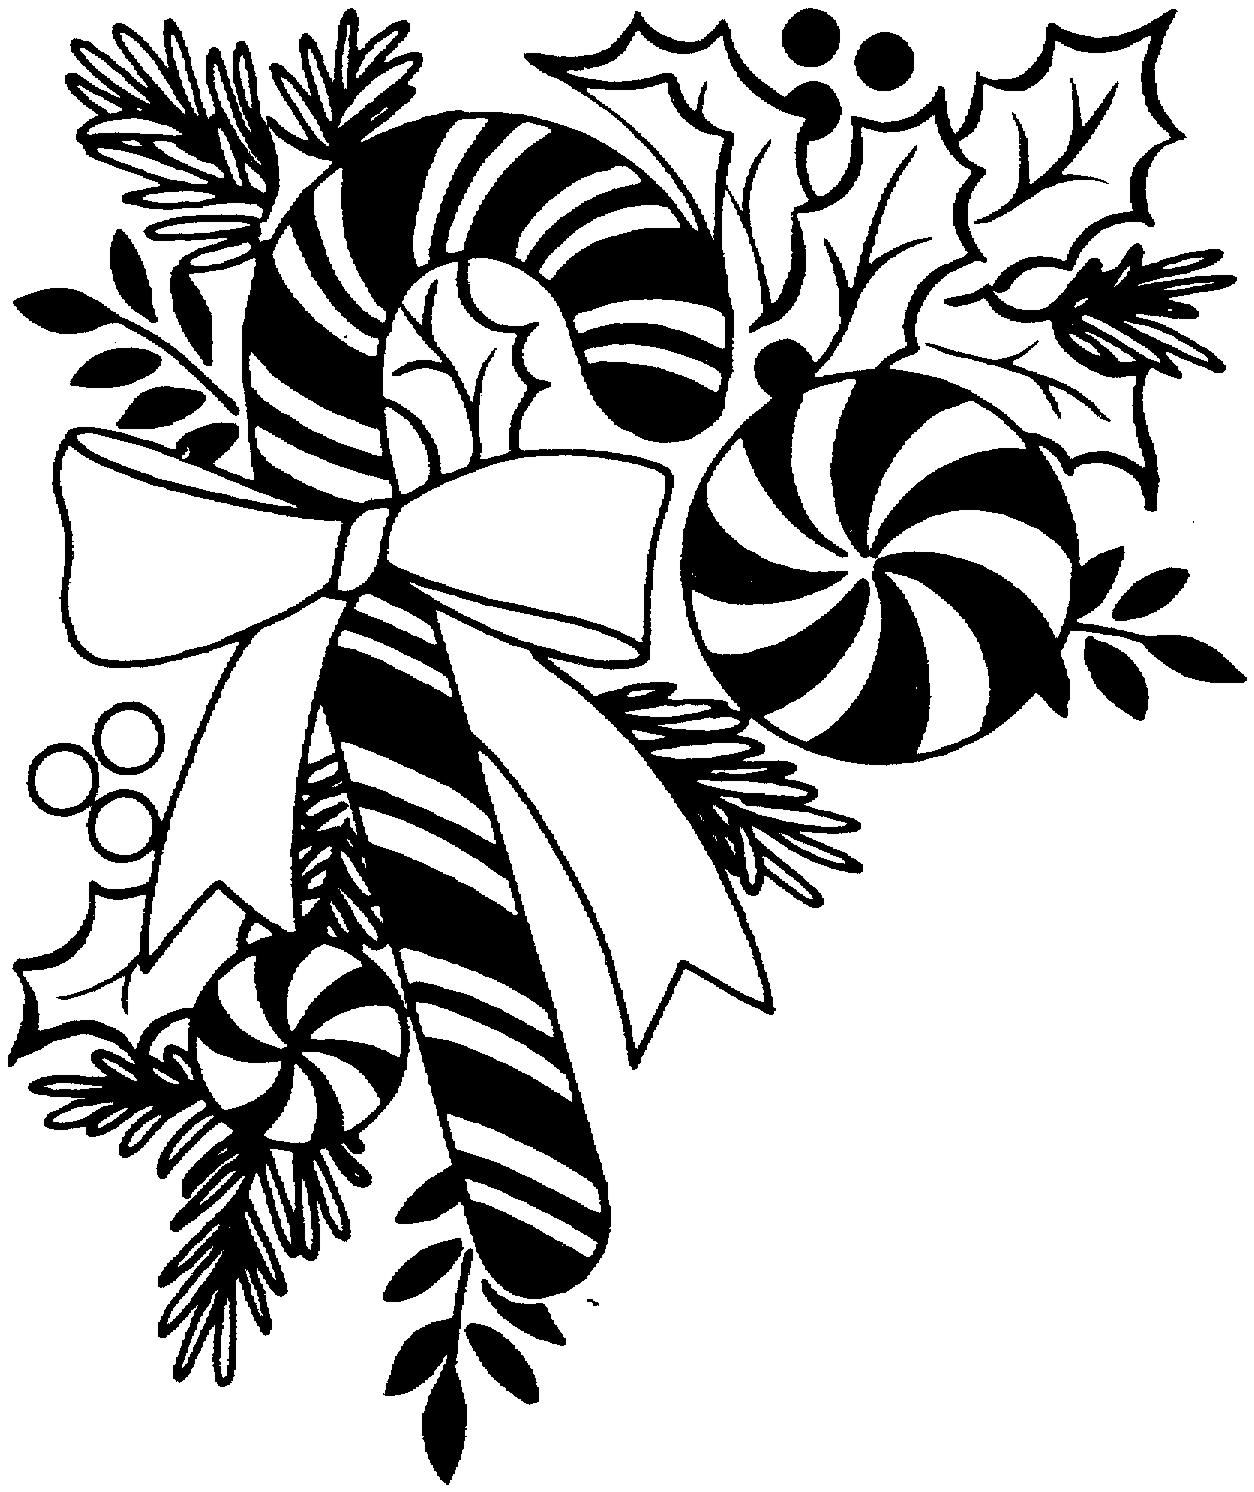 1254x1492 Christmas Black And White Clipart.